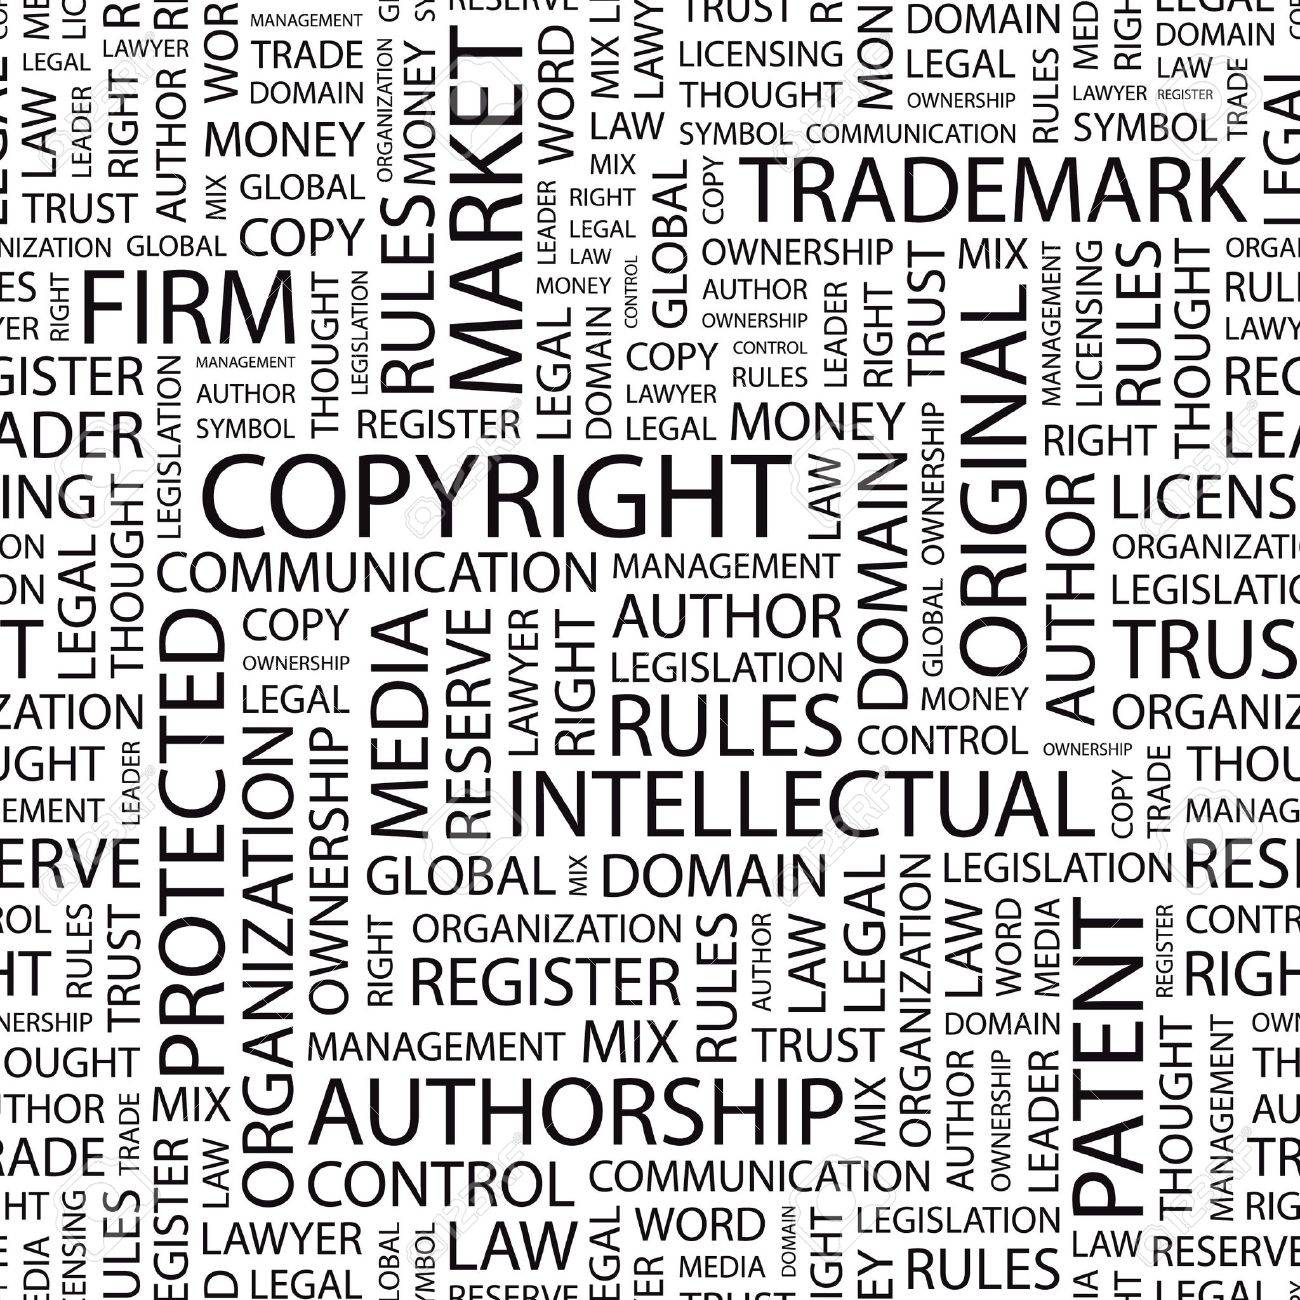 COPYRIGHT. Seamless background. Word cloud illustration. - 7331036